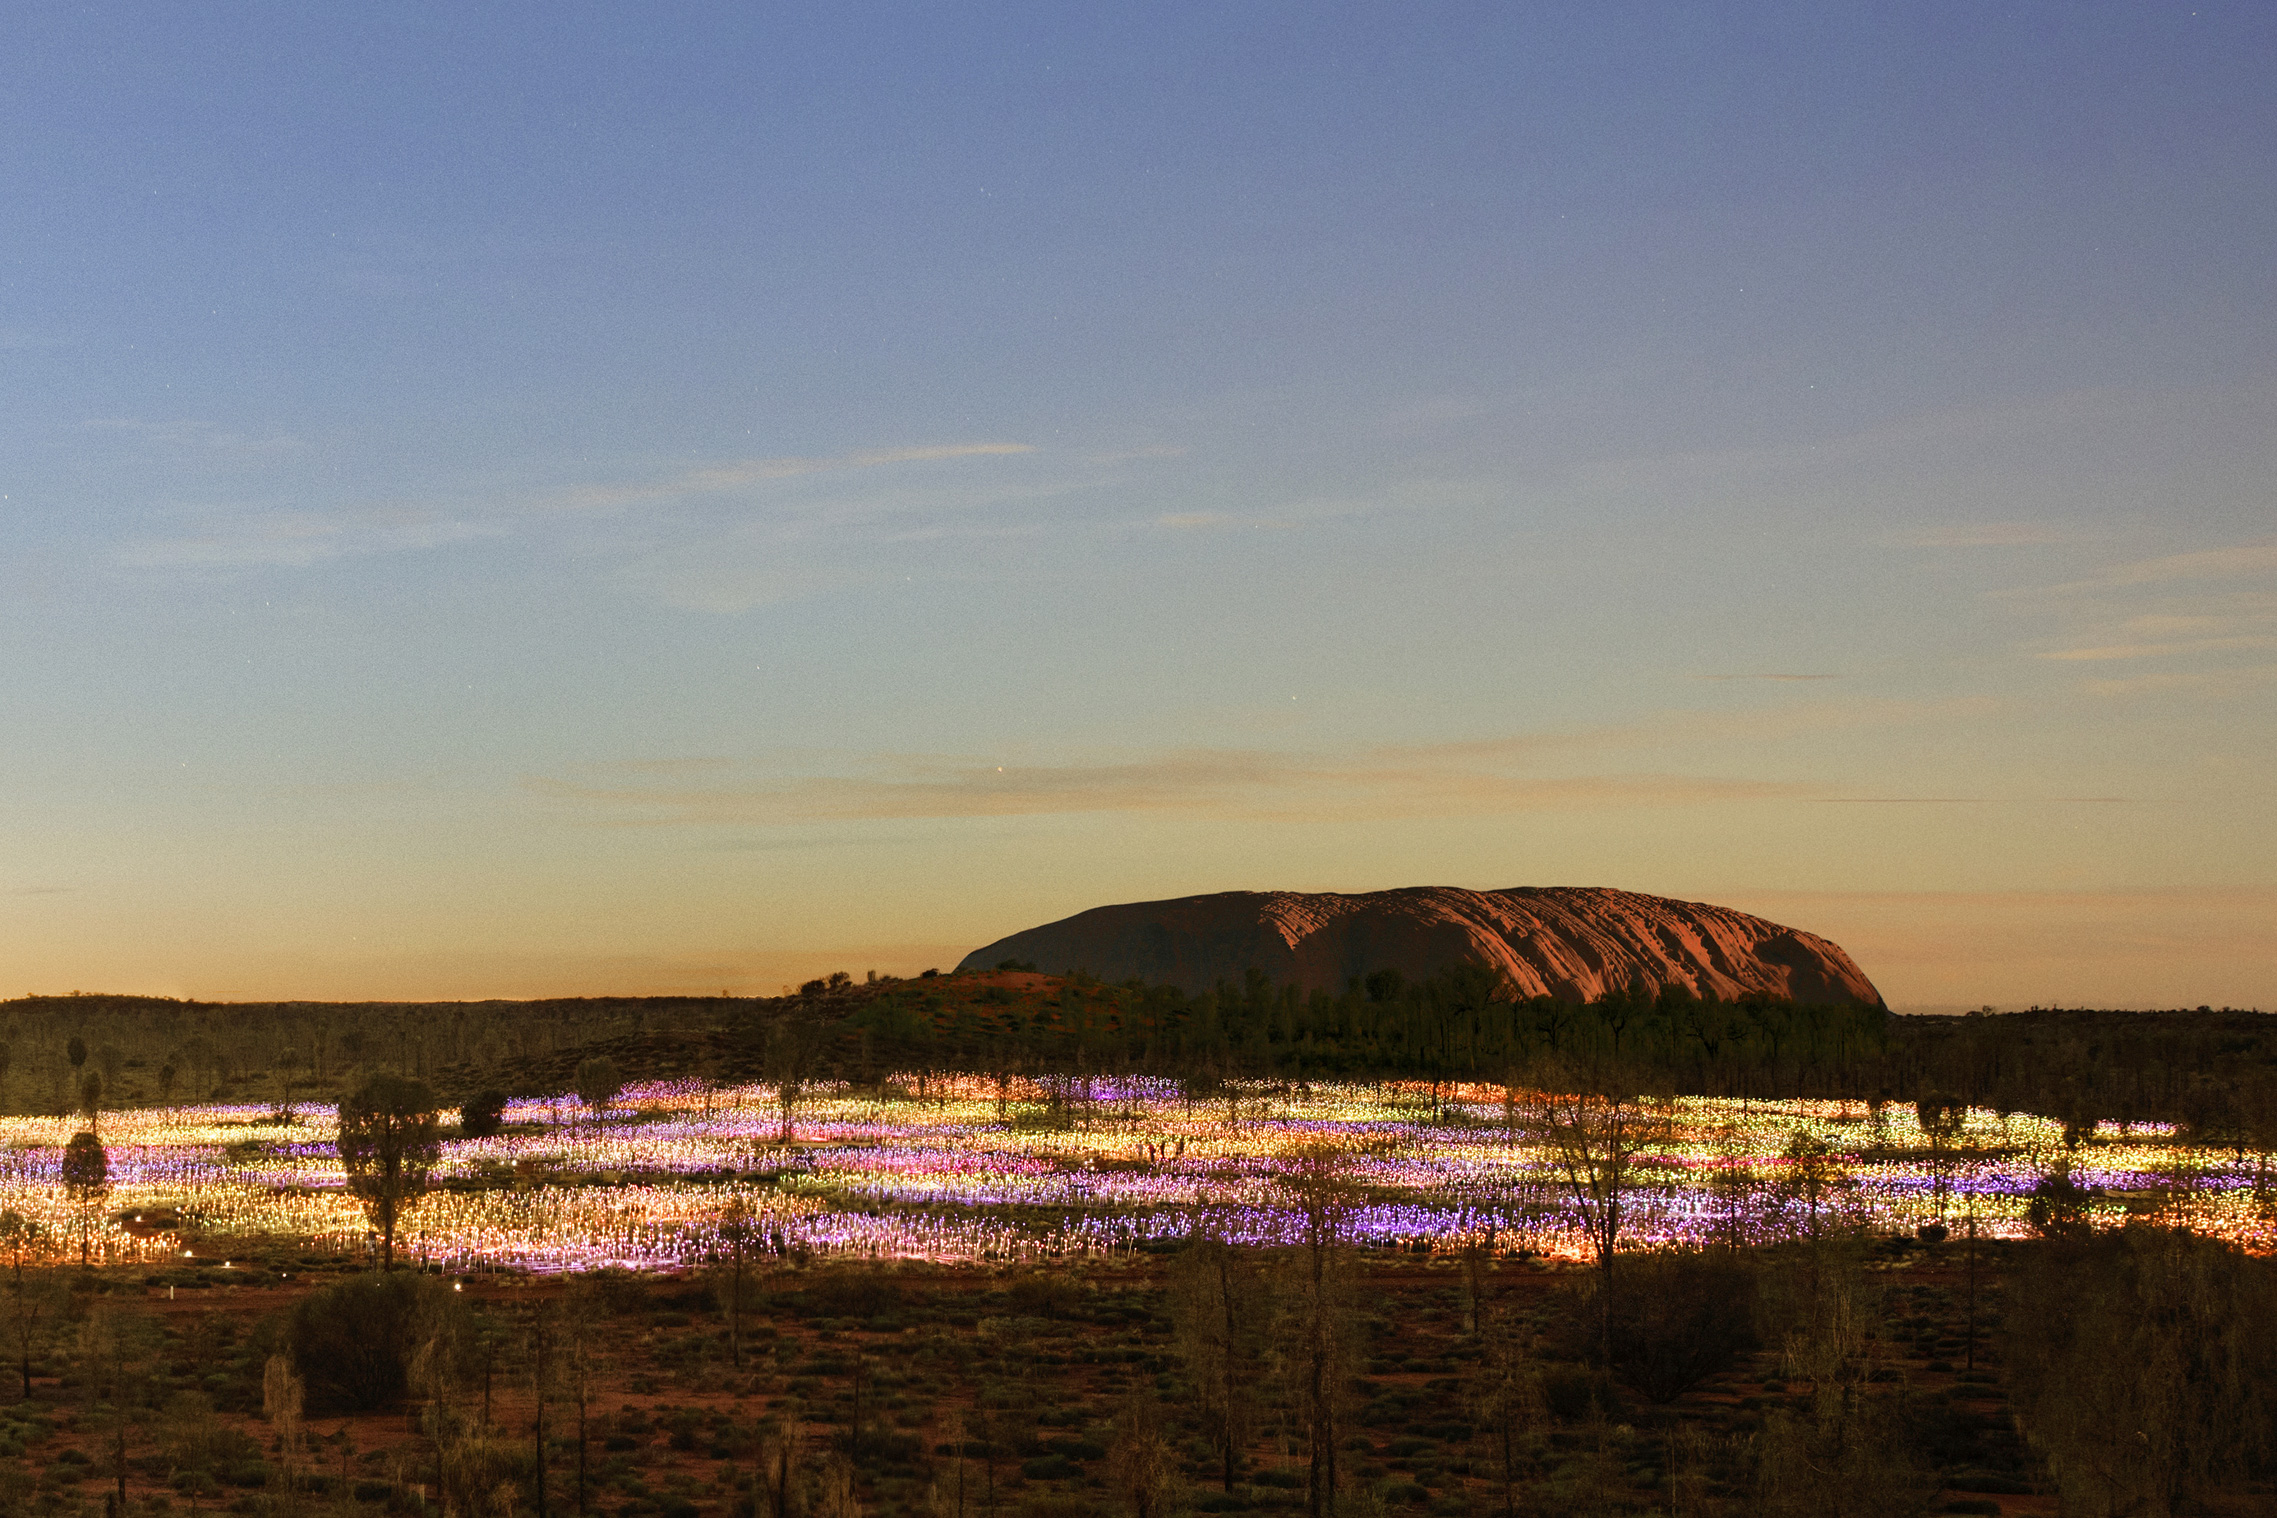 field-of-light-uluru-australia.jpg